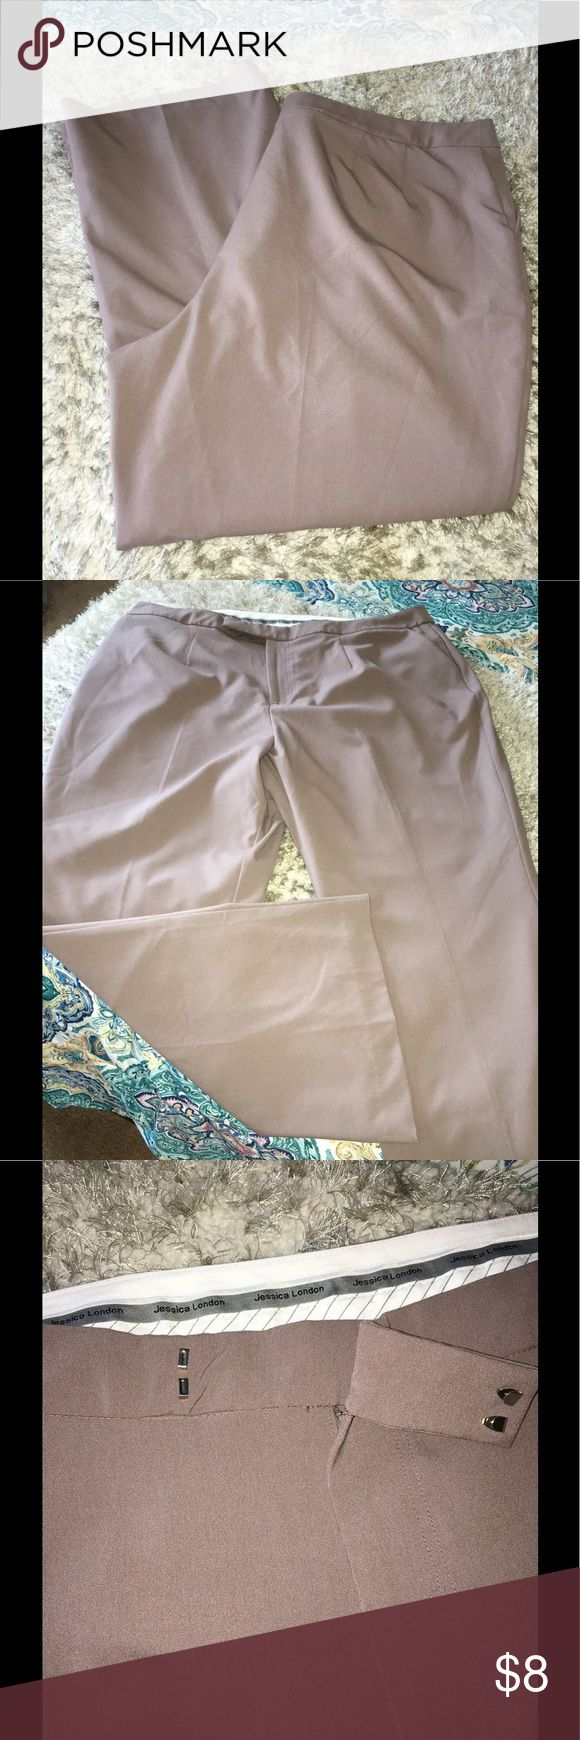 Jessica London Taupe Dress Pants Size 22 Dress pants by Jessica London.  Taupe color with a blush undertone.  Side slant pockets.  Size 22. Inseam is 30.5 inches long.   Great condition.  Important:   All items are freshly laundered as applicable prior to shipping (new items and shoes excluded).  Not all my items are from pet/smoke free homes.  Price is reduced to reflect this!   Thank you for looking! jessica london Pants Trousers